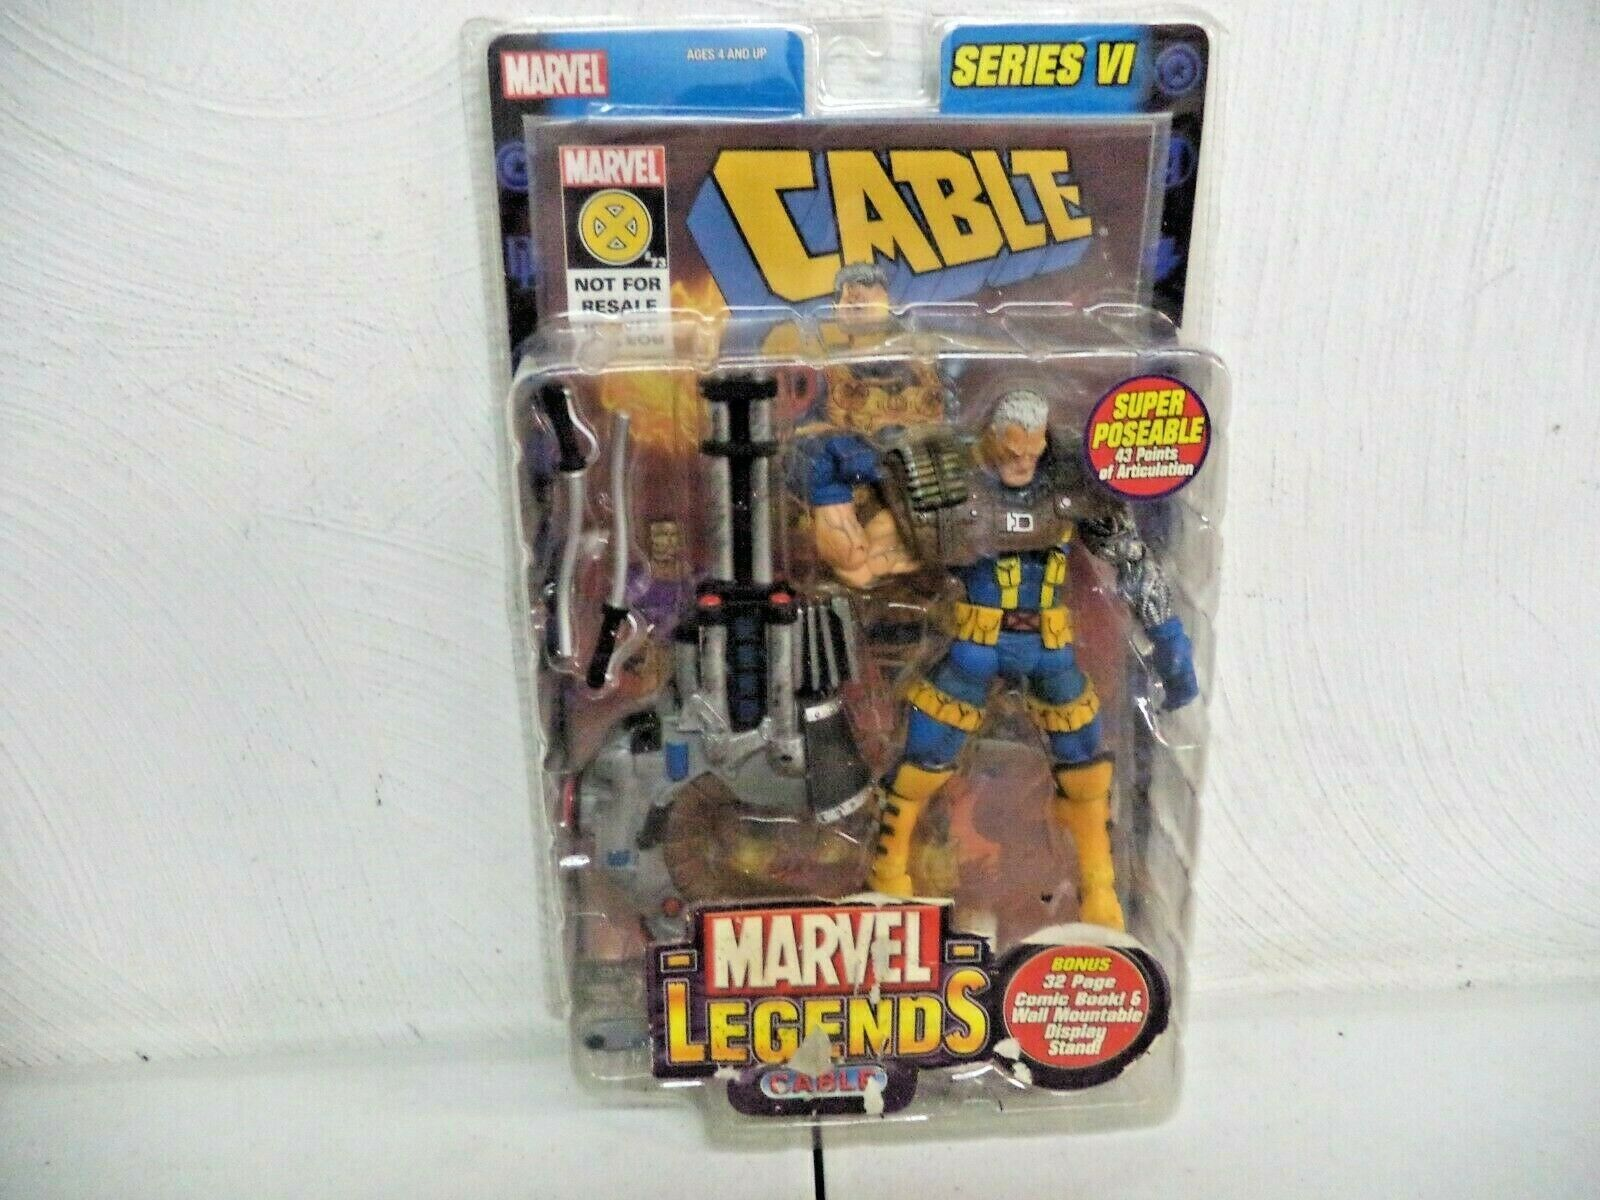 2004 - TOY BIZ - MARVEL LEGENDS - SERIES VI - CABLE FIGURE - BRAND NEW